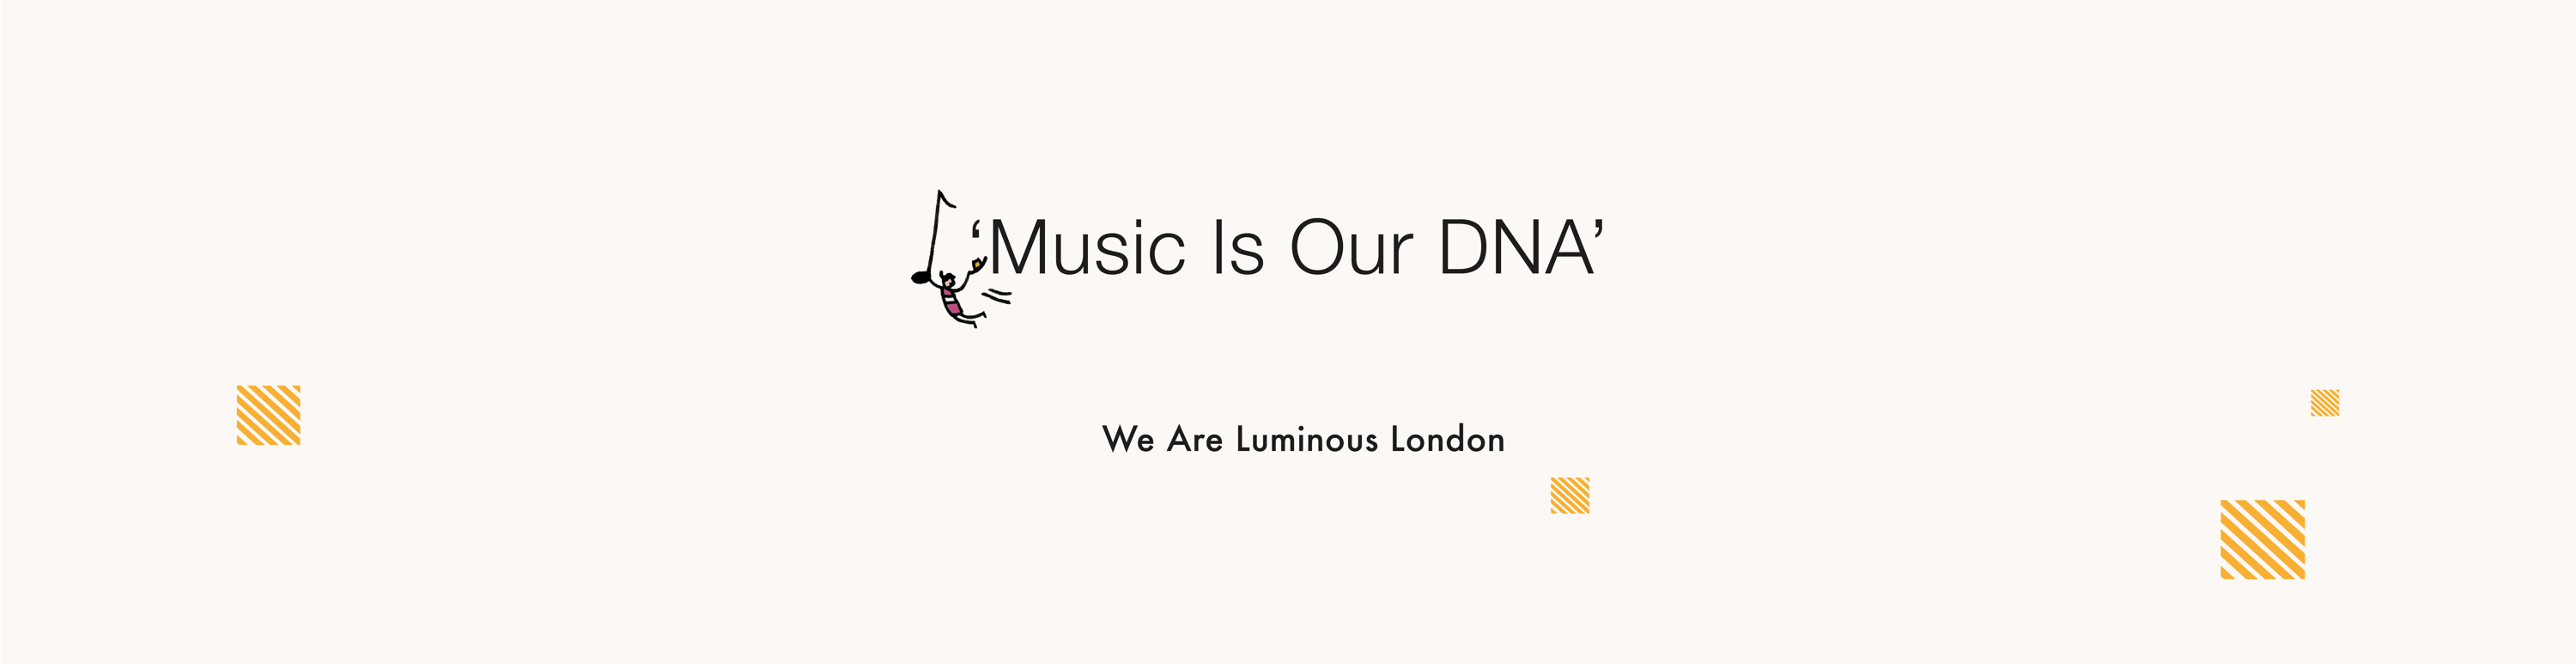 'Music Is Our DNA'